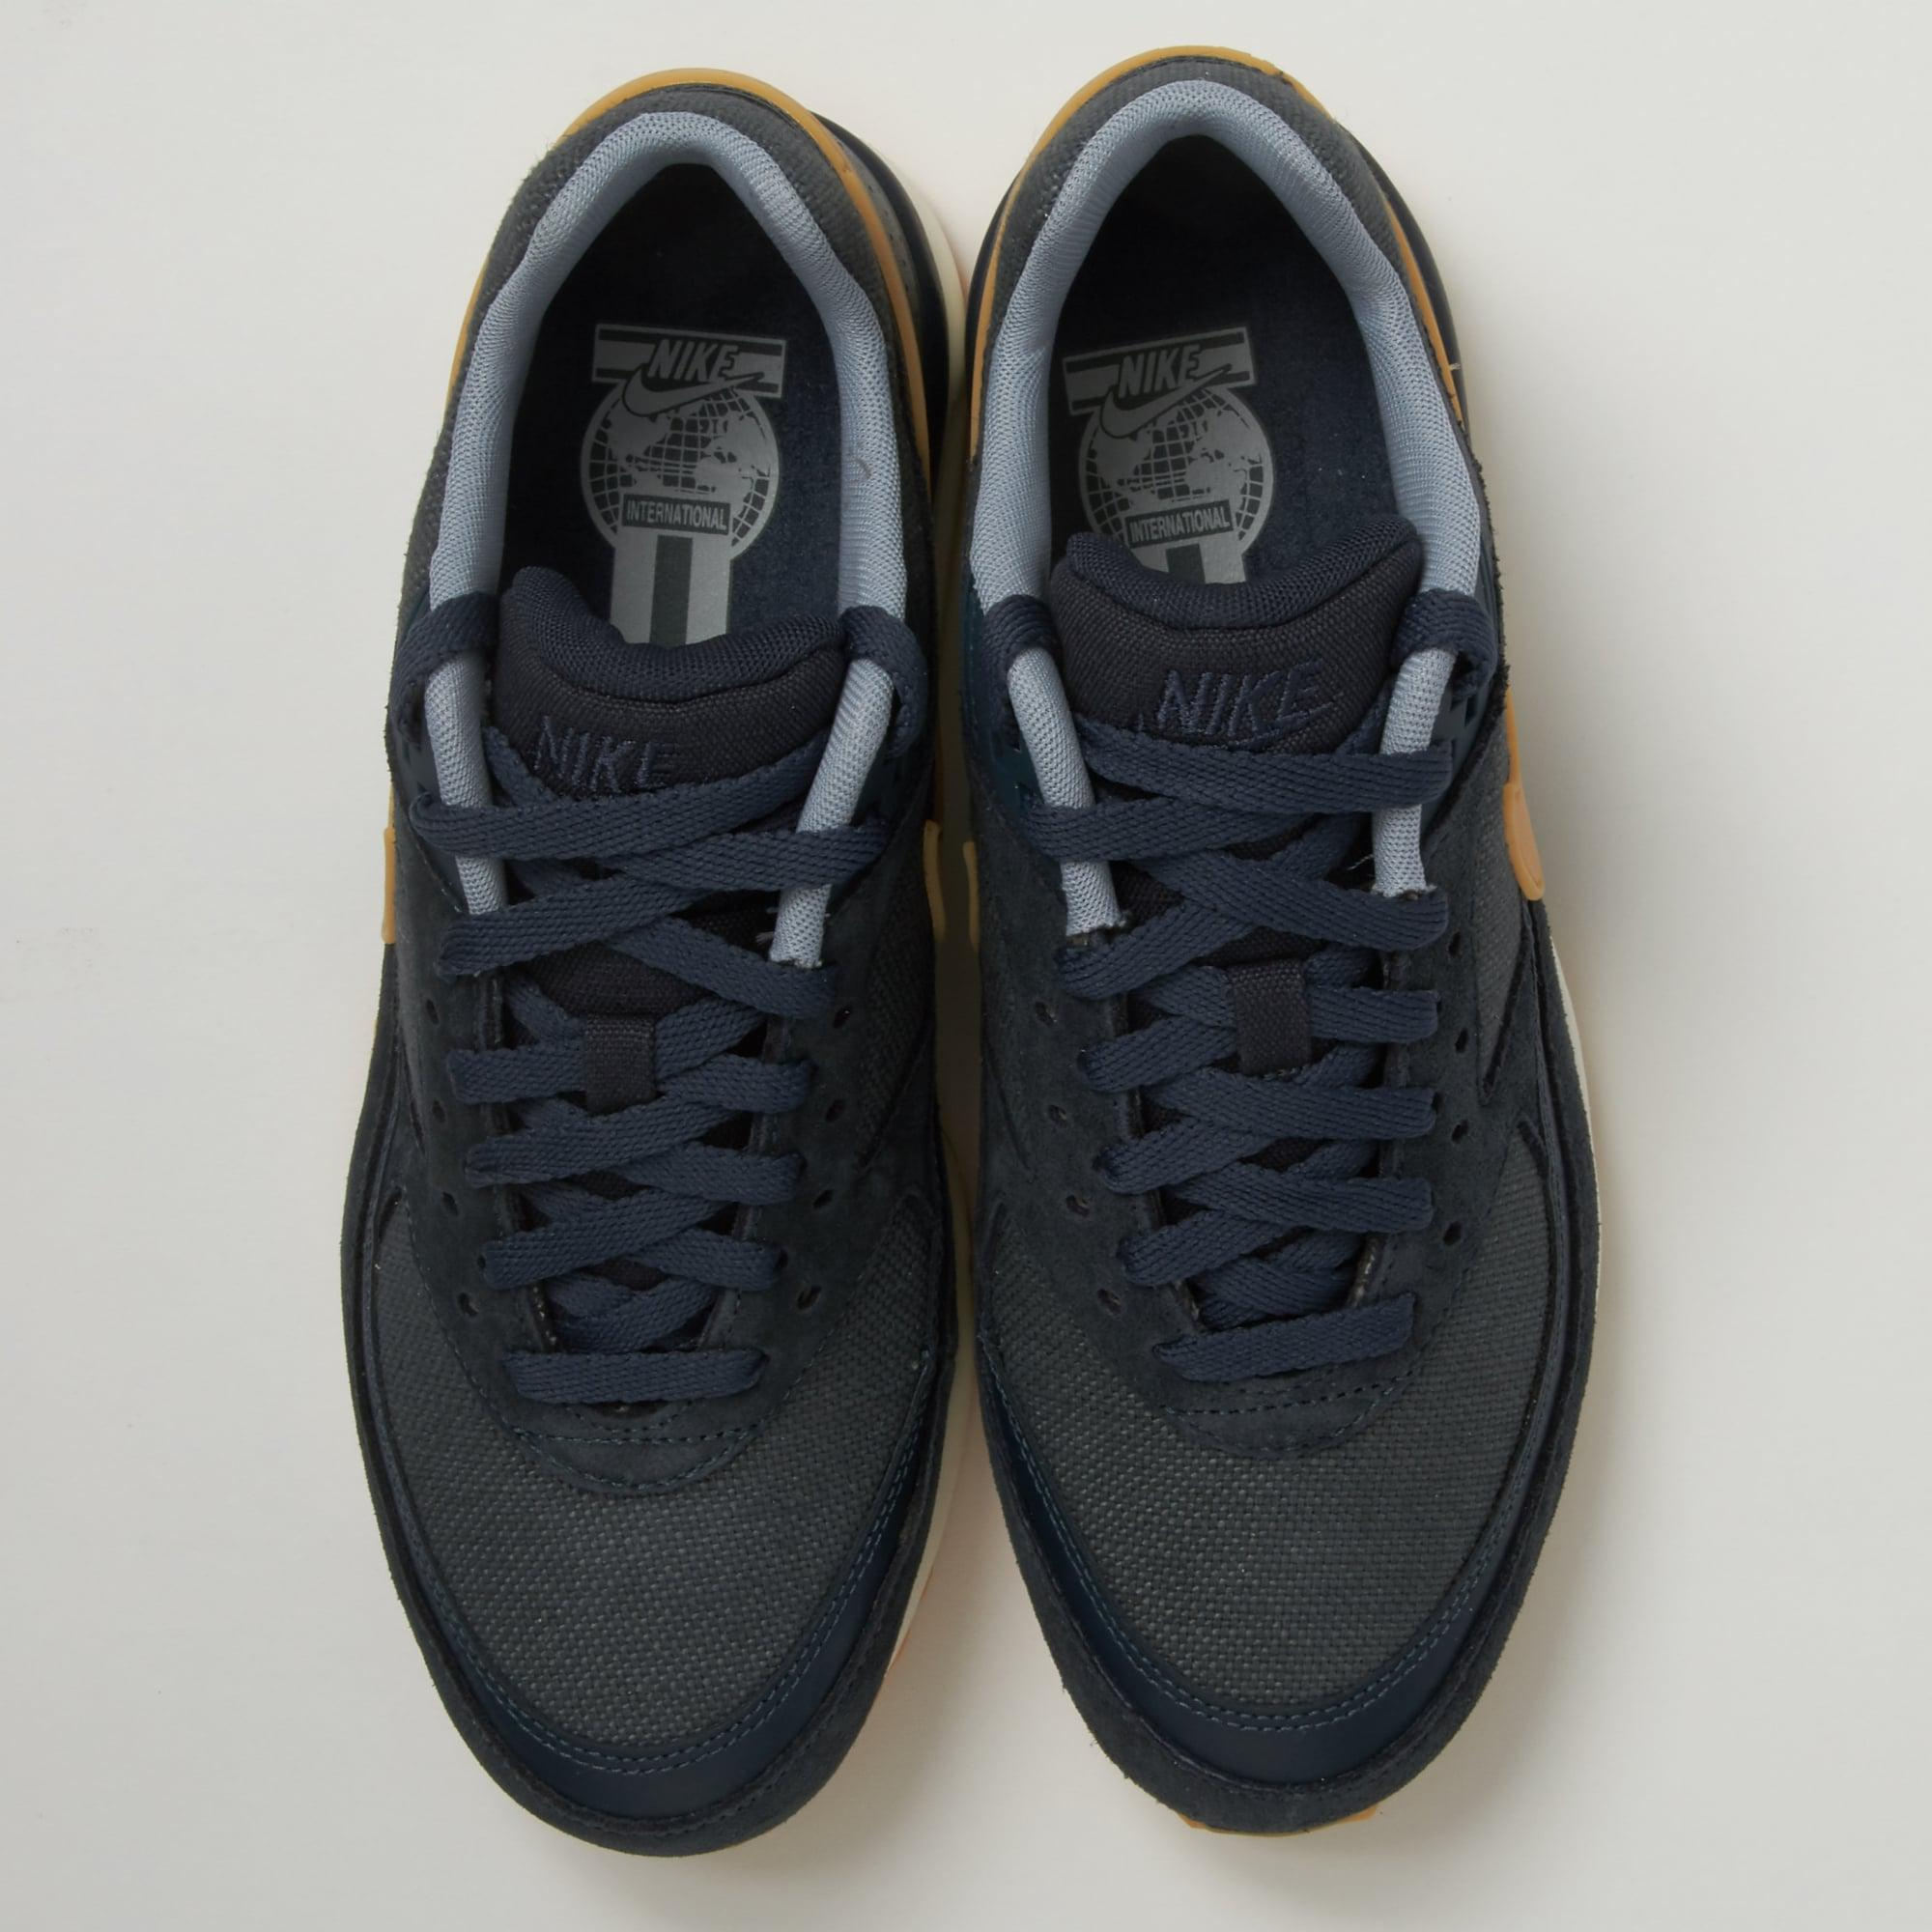 Nike Suede Air Max Bw Armory Blue Shoe for Men